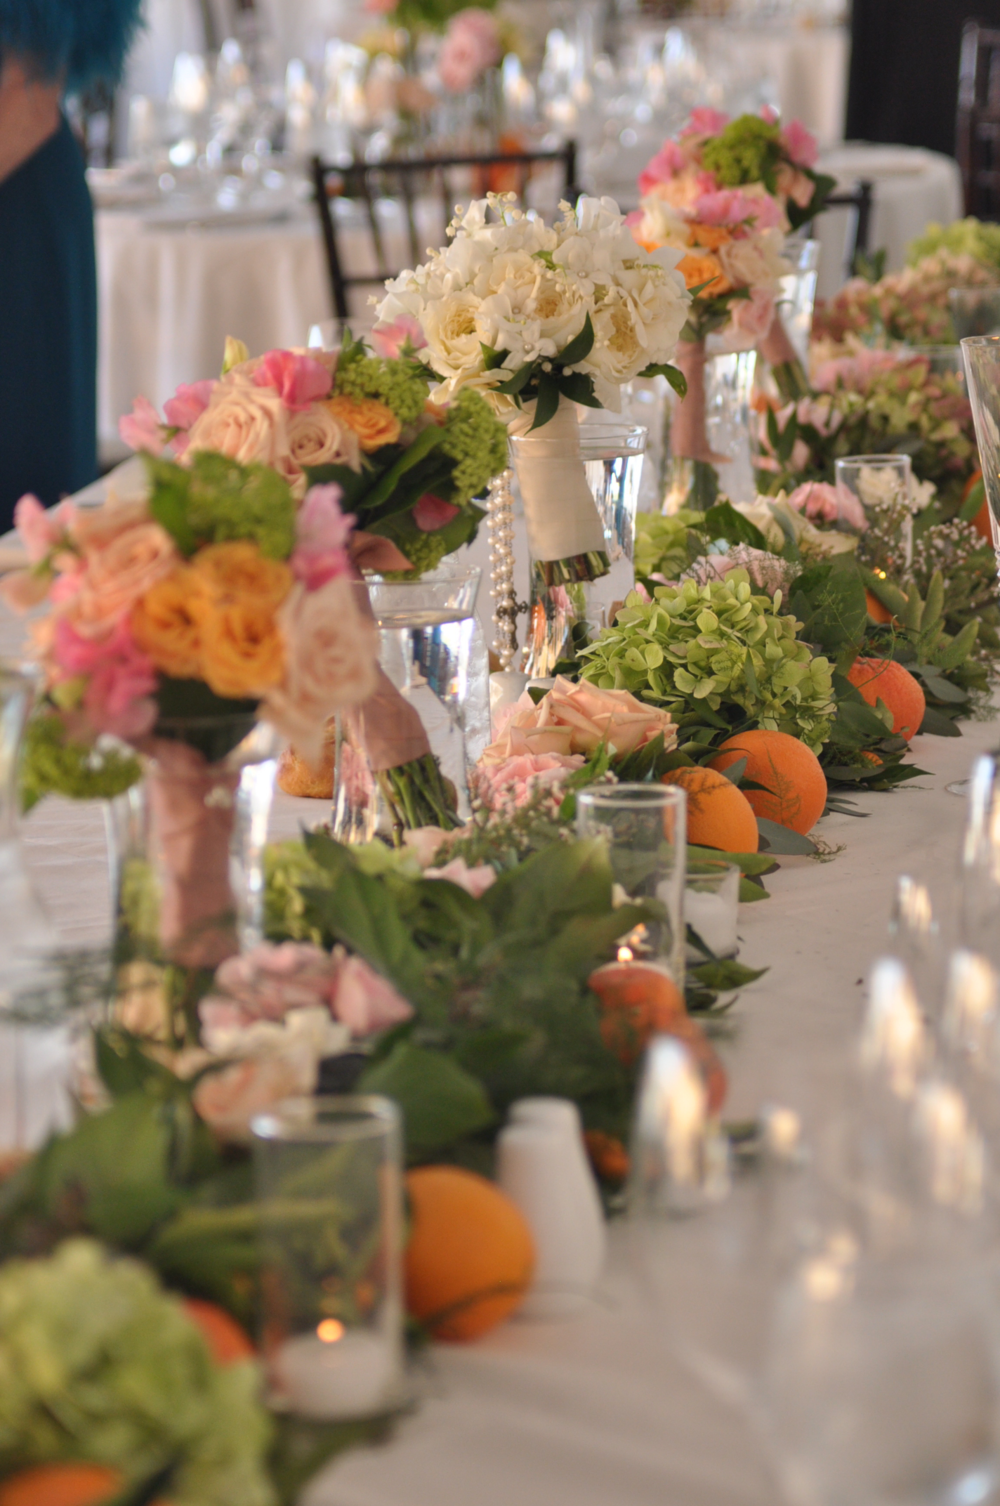 Photo by: Cheryl Mestmaker Photography  Event Design, Production and Custom Floral by: Flourishing Art